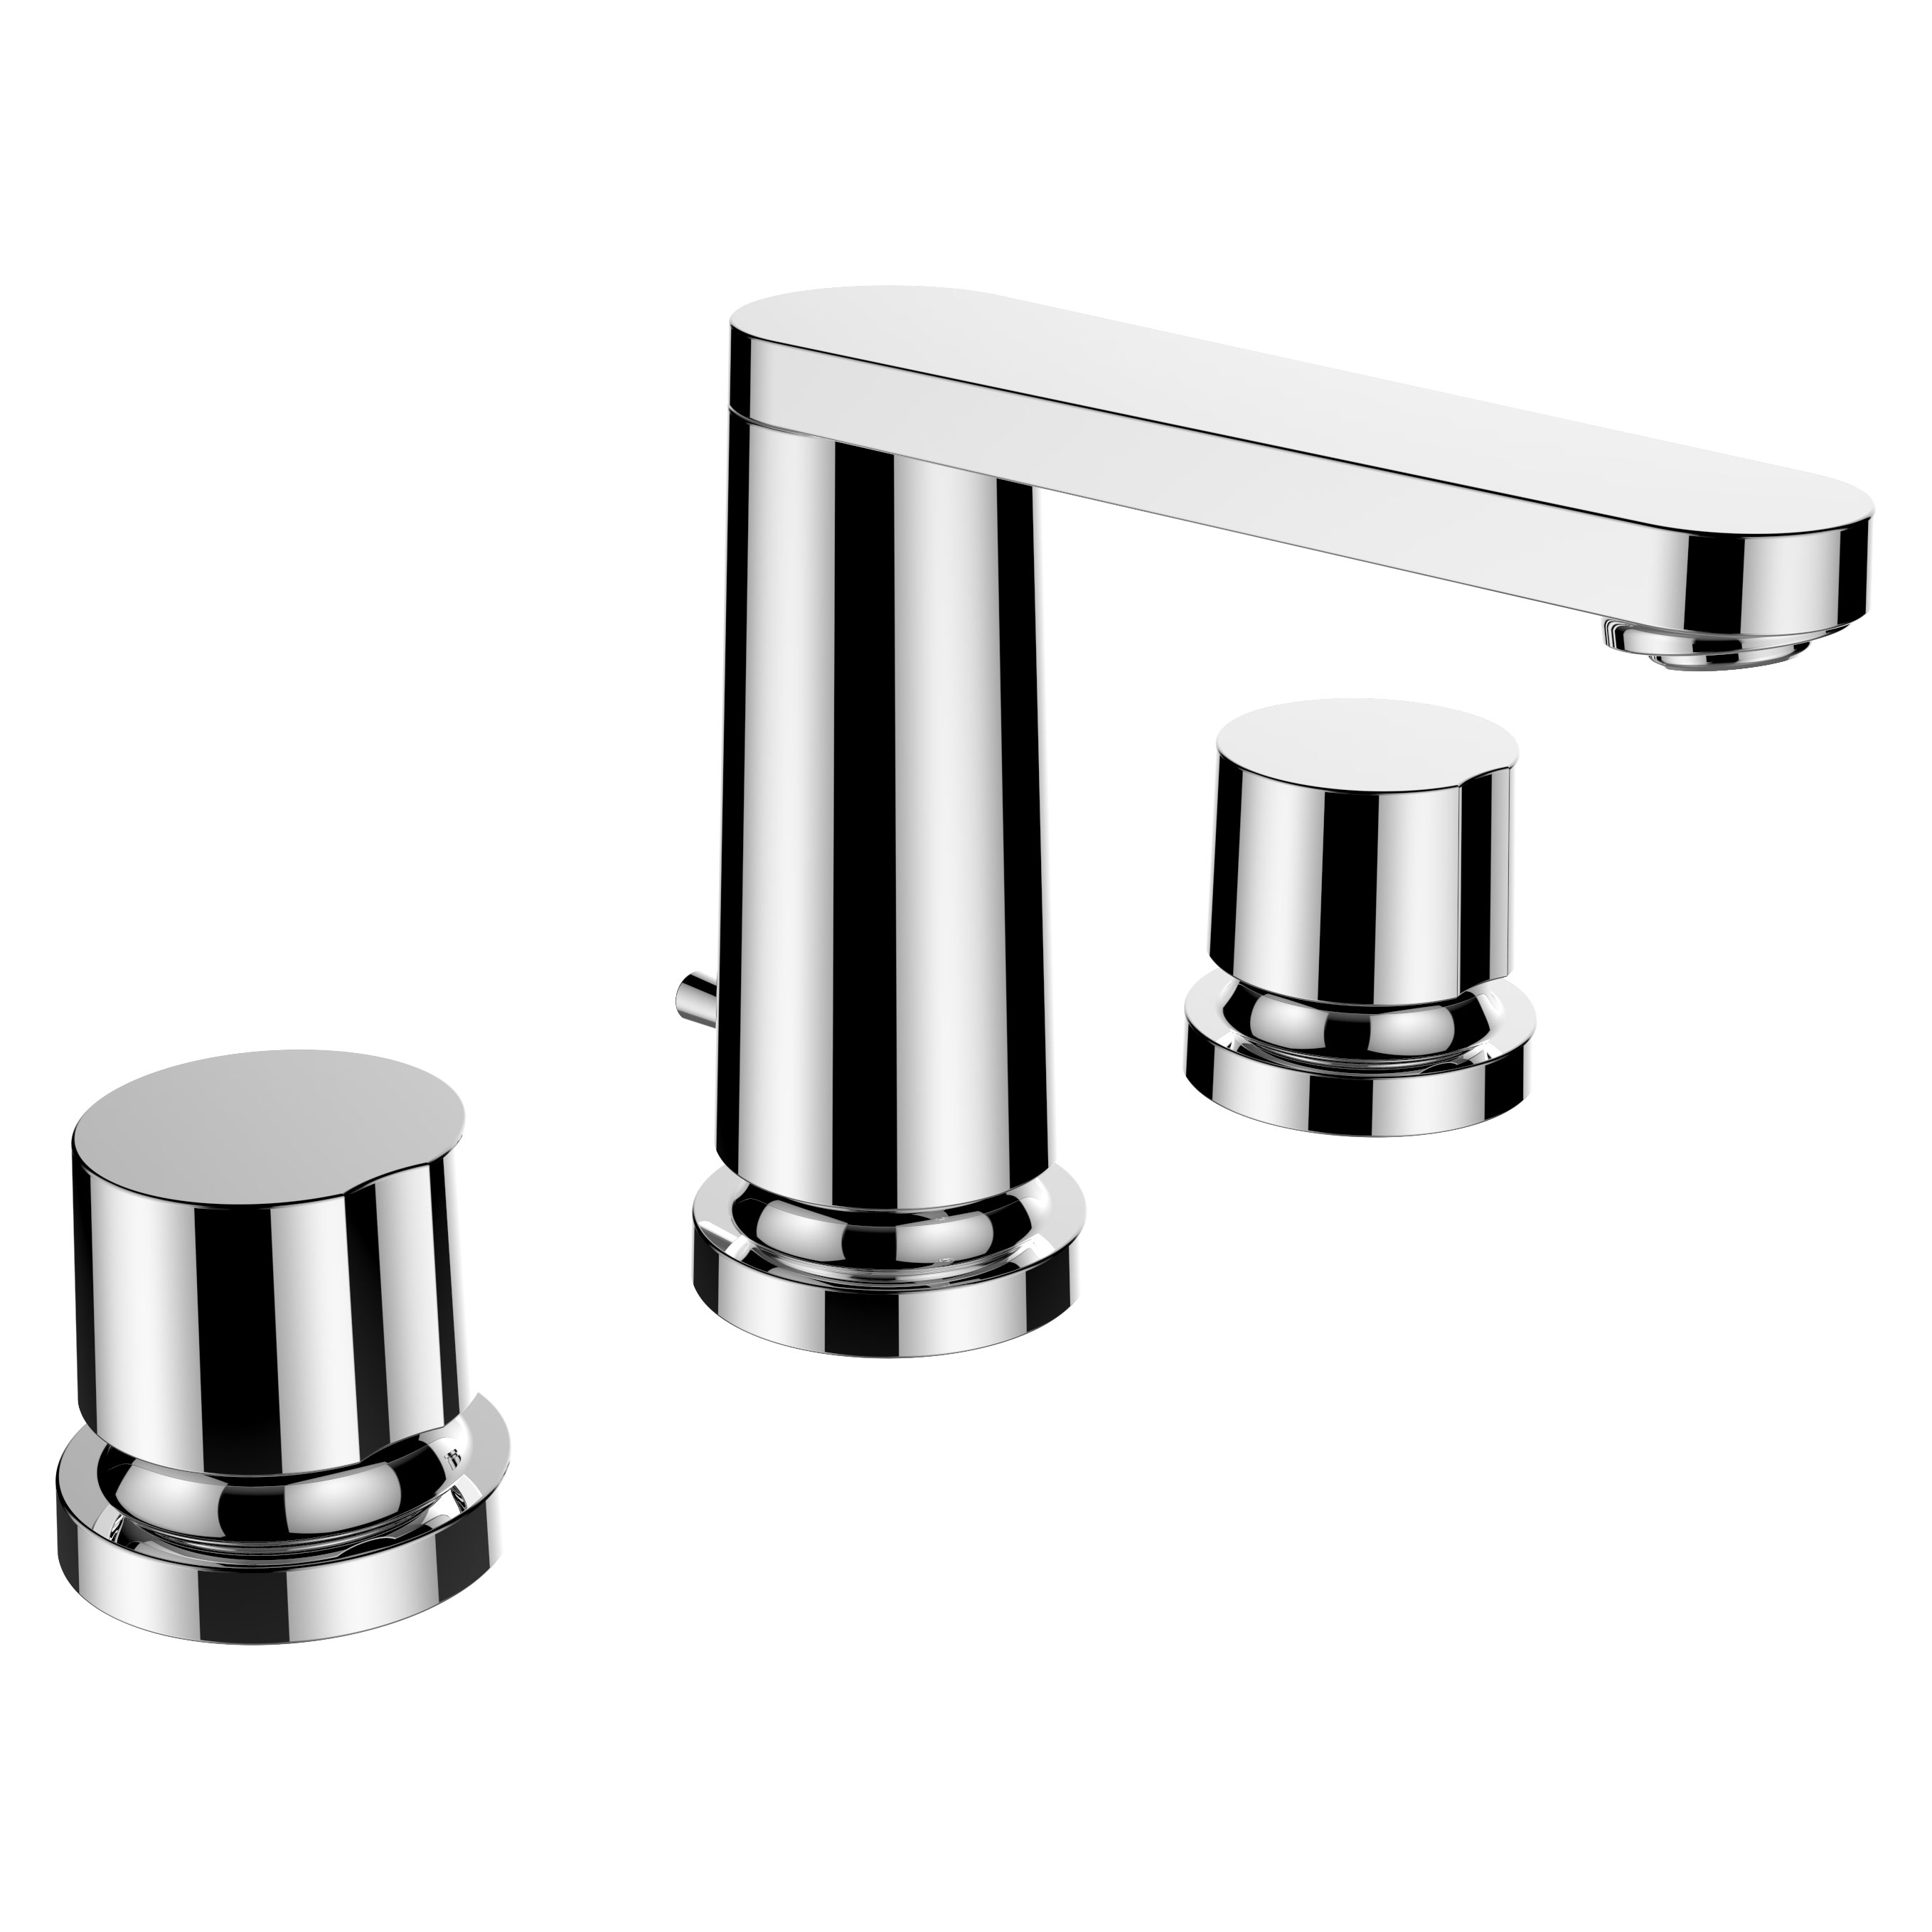 click on 3 Hole Basin Mixer - 130mm Spout image to enlarge